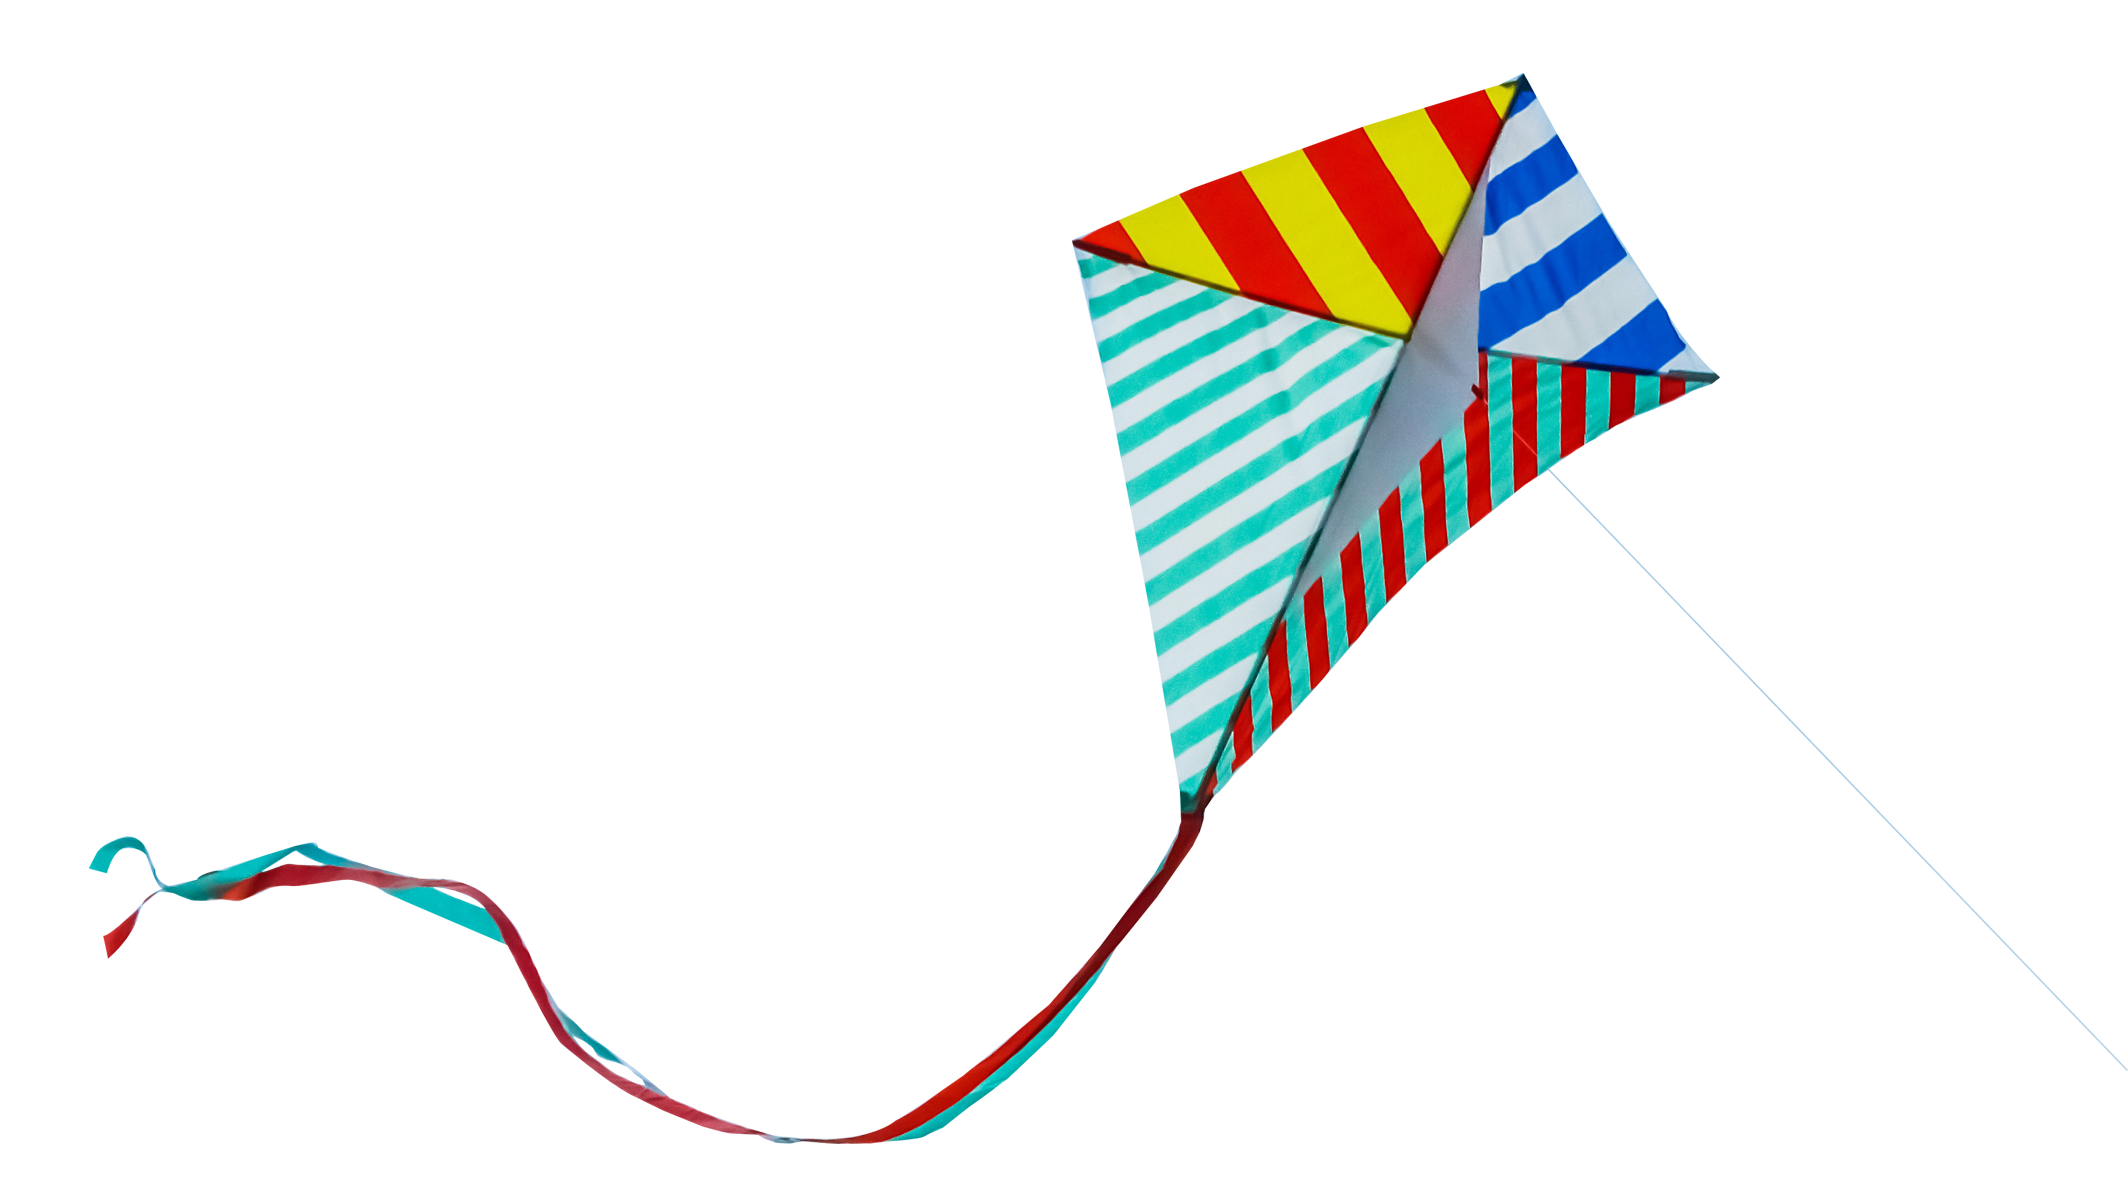 Kite PNG HD Images